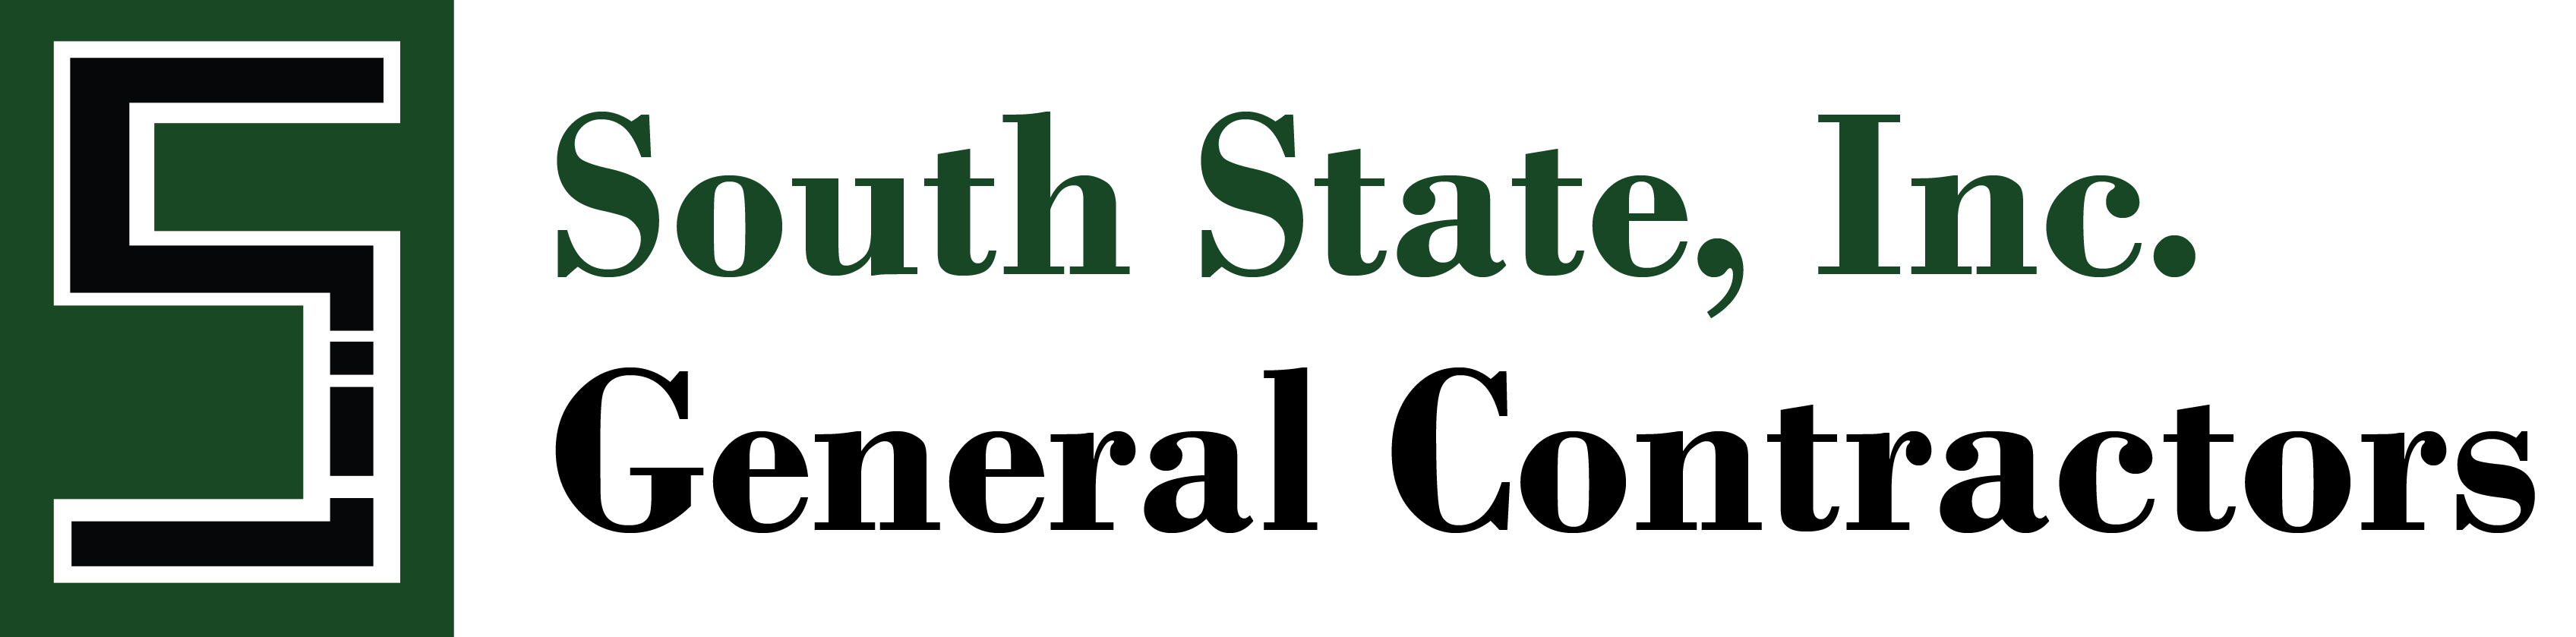 South State, Inc